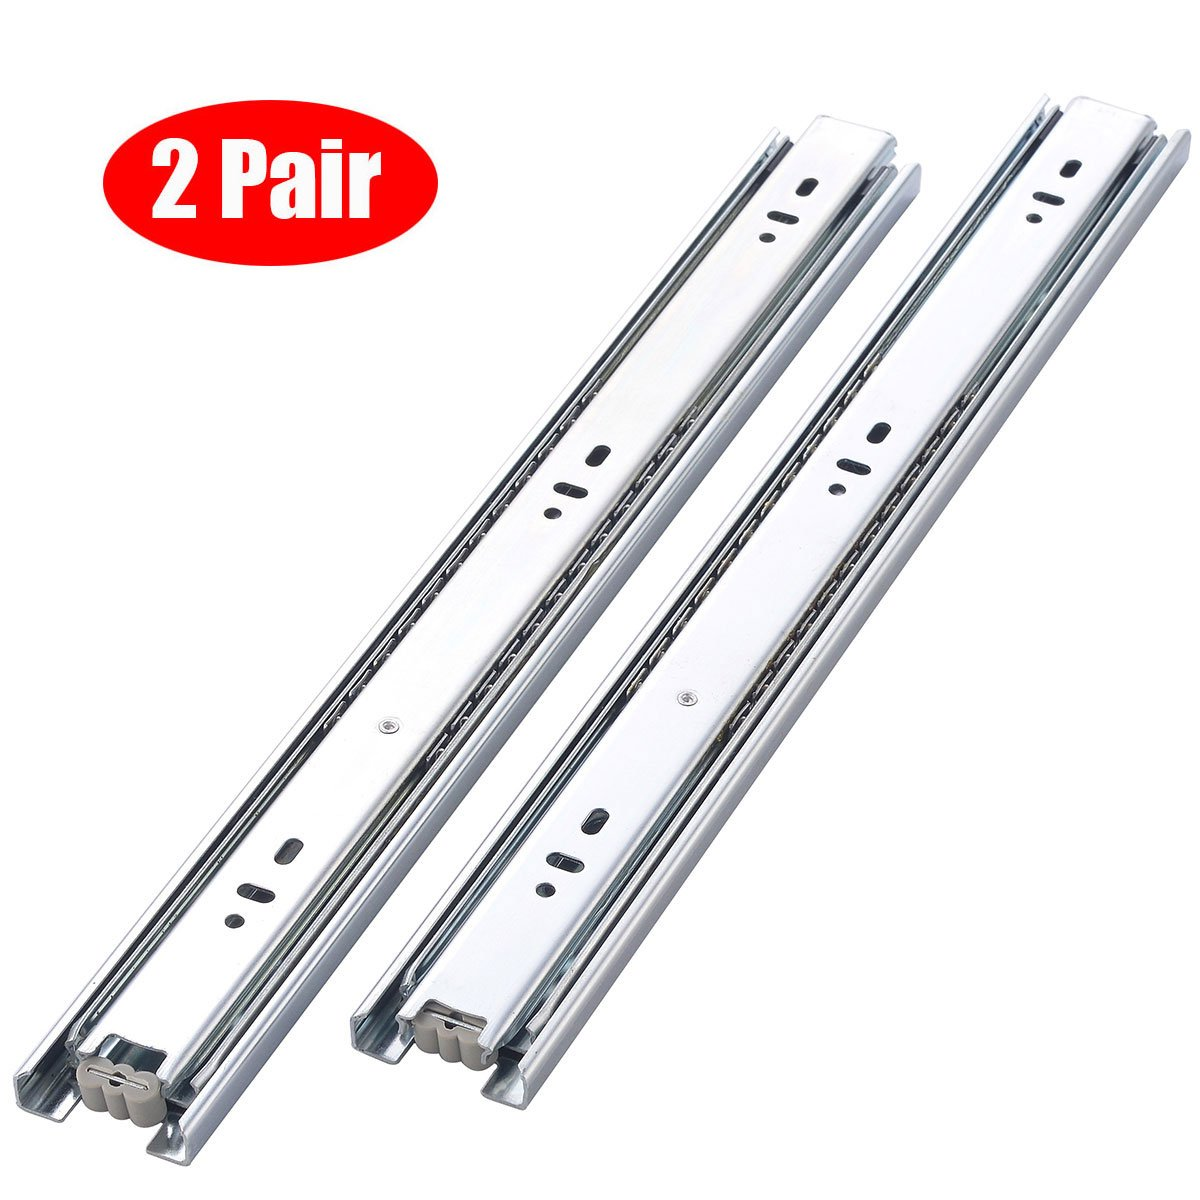 "KINGO Home 2 Pair of 18 inch Full Extension Stainless Steel Hardware Ball Bearing Side Mount Drawer Slides, Available in 10'' 12'' 14'' 16'' 18"" 20"" Lengths by KINGO HOME (Image #1)"